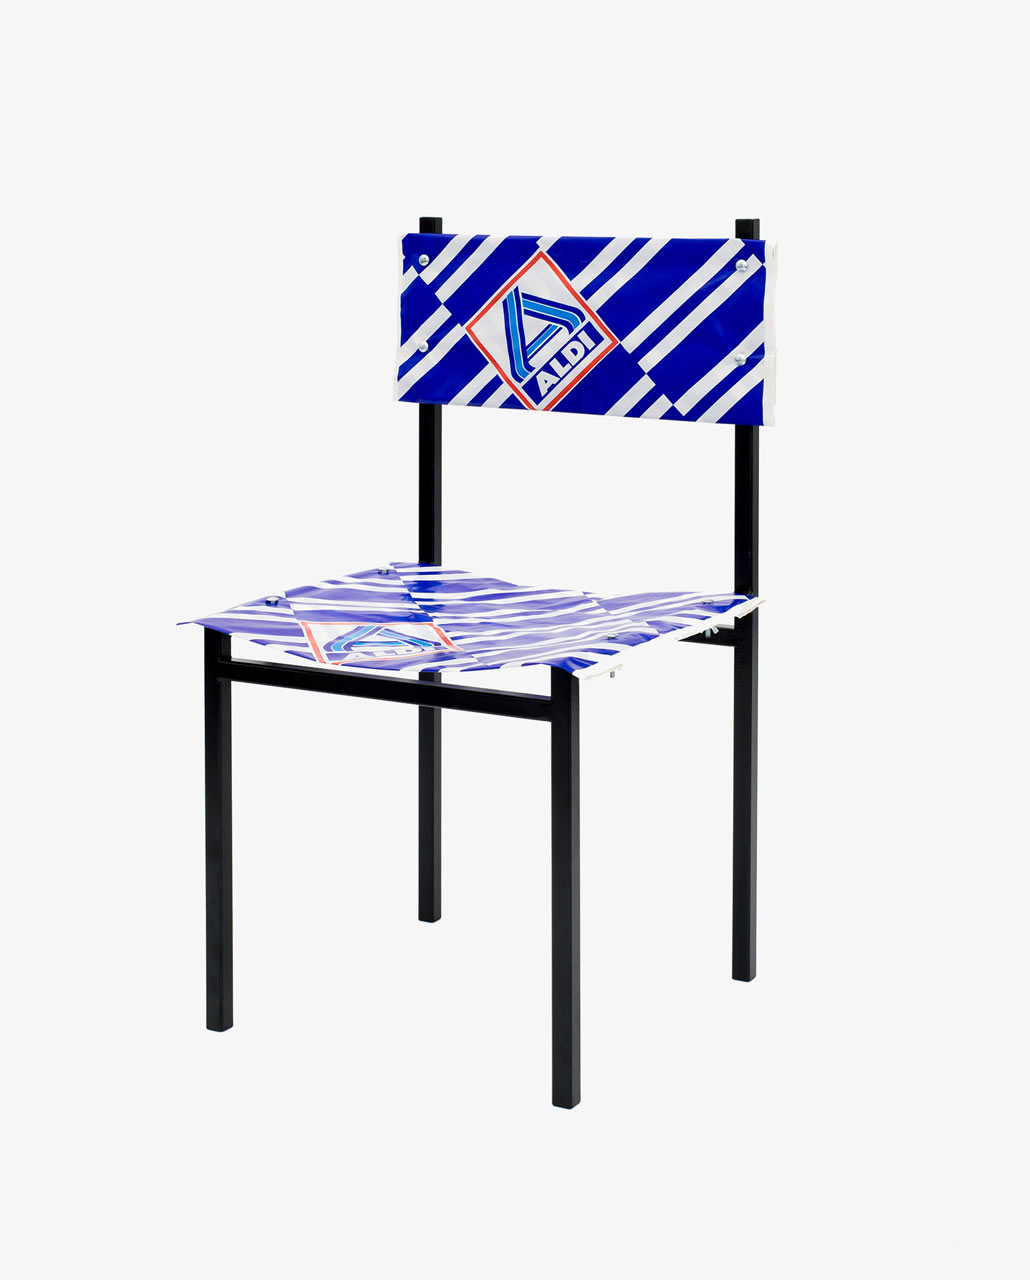 simon_freund-shopping_bag_chairs-hisheji (2)